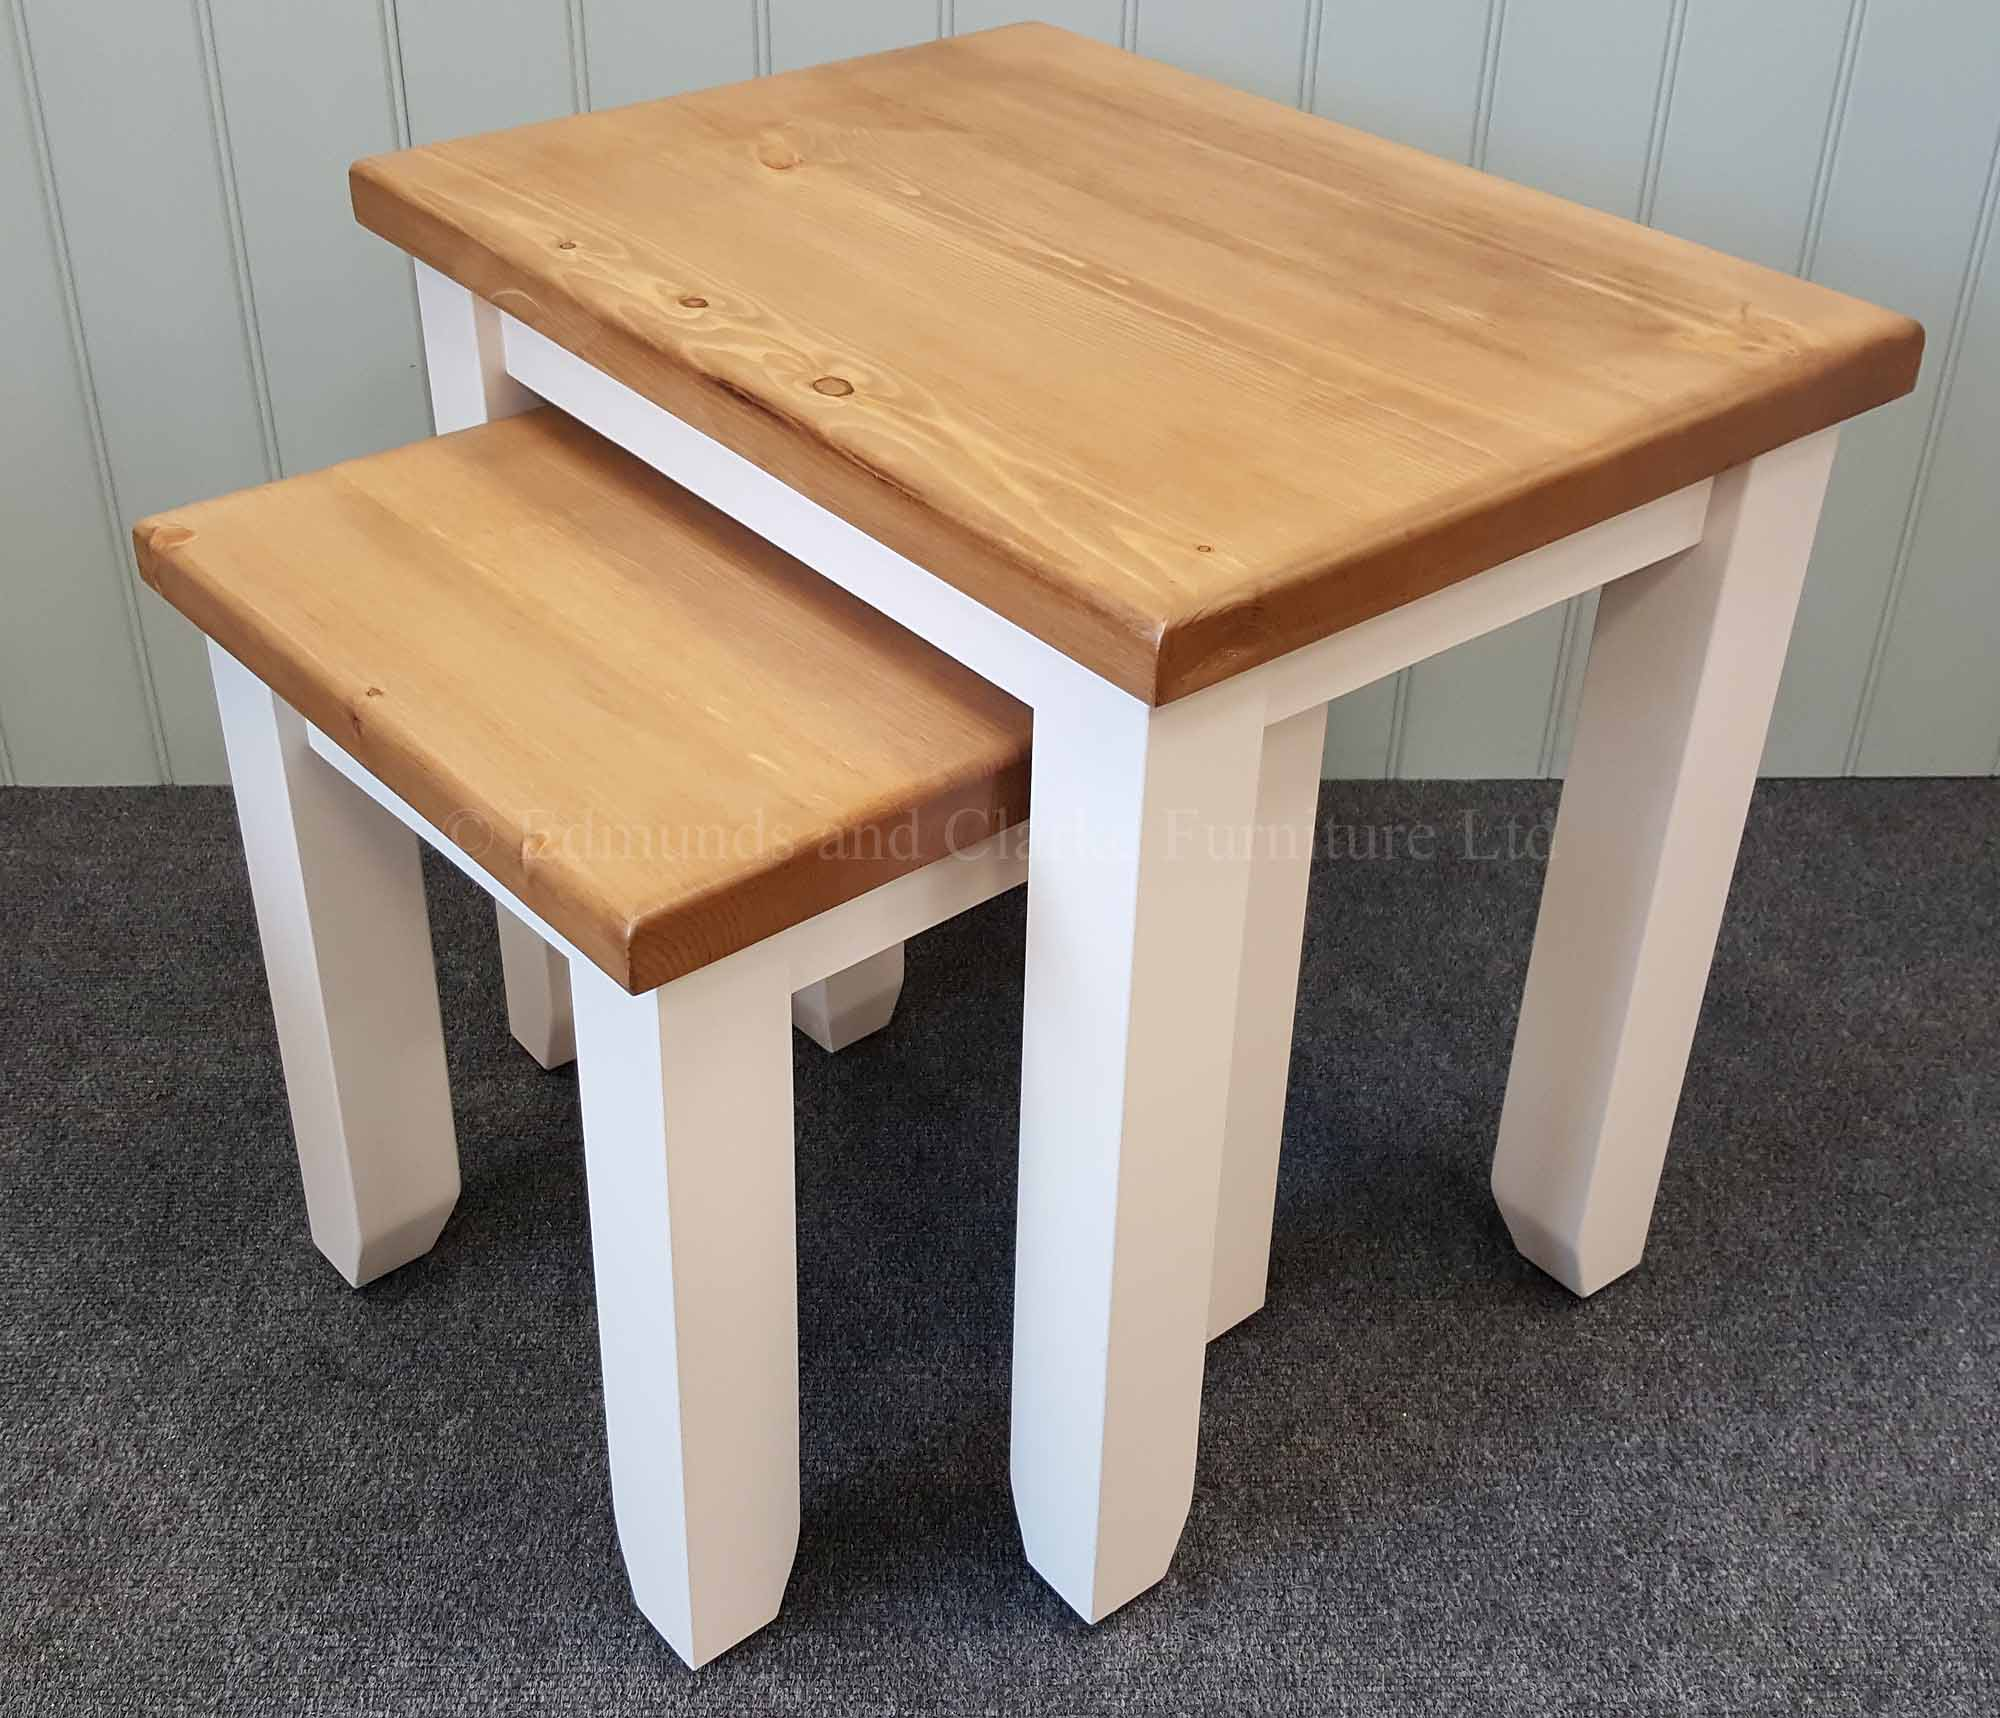 Nest of two shaker style square leg tables